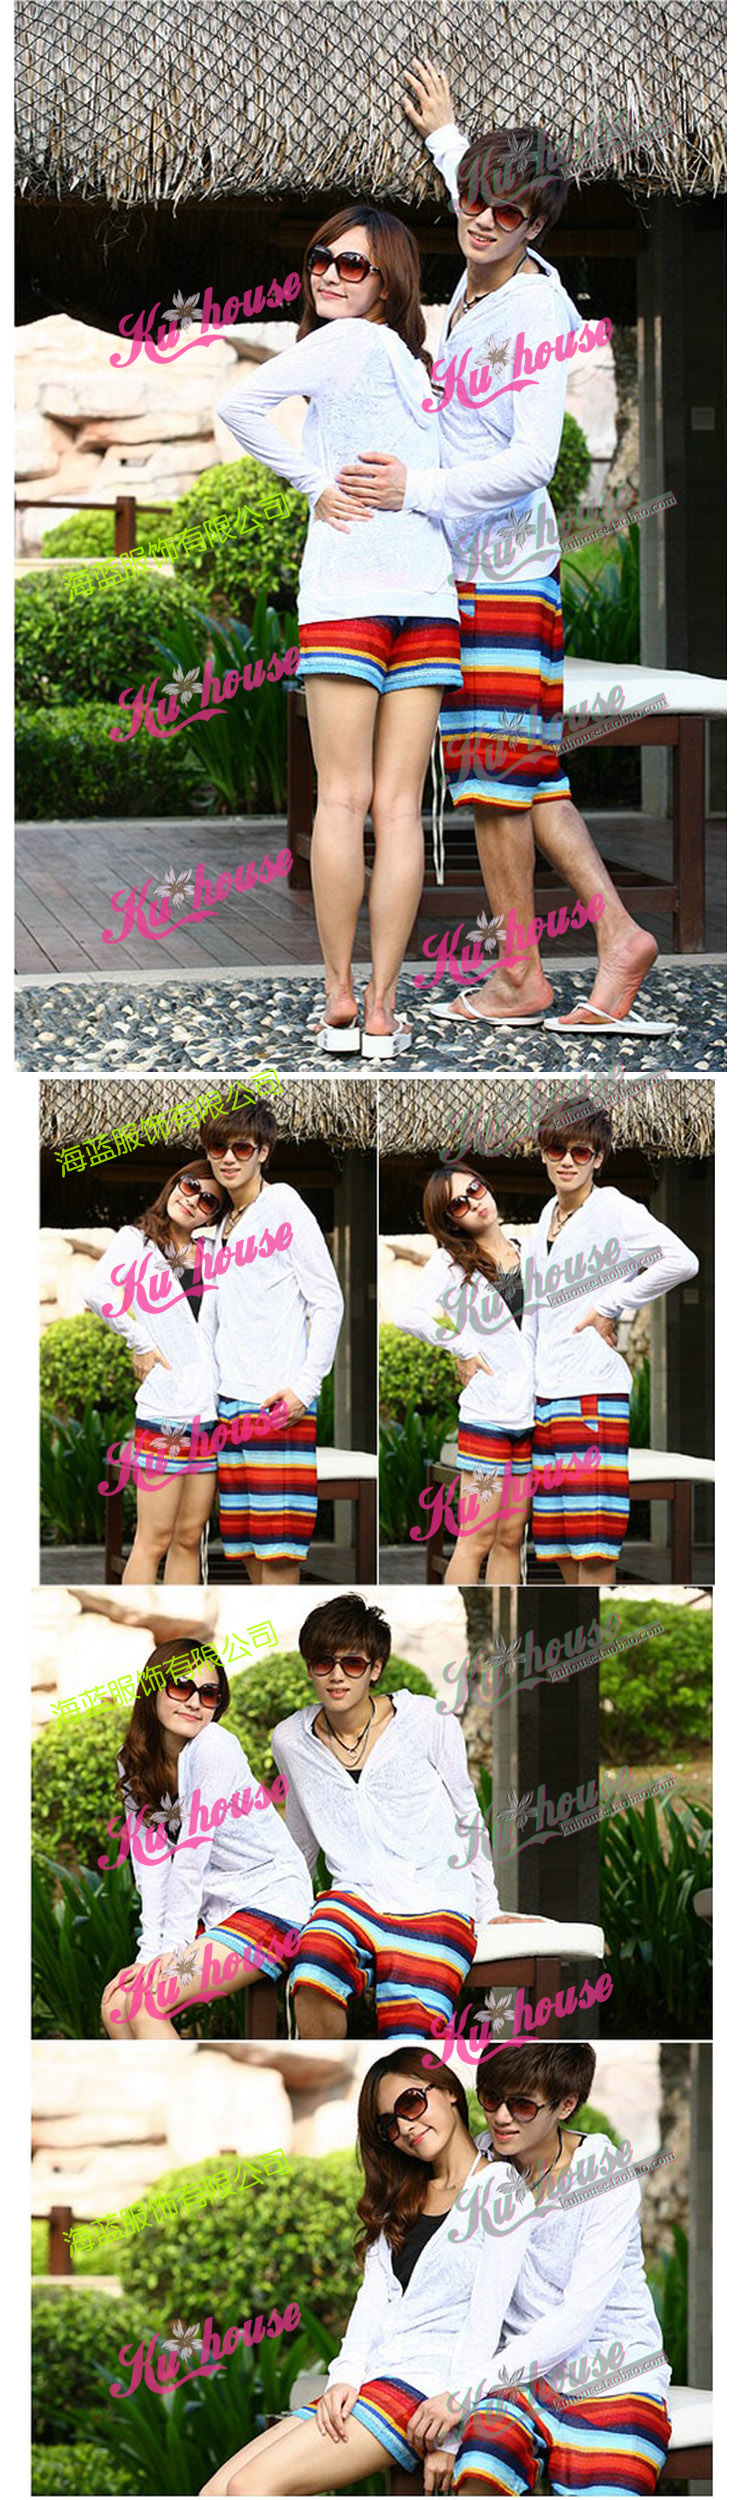 Kuhuouse Striped Cotton Loose Soft Breathable Comfortable Thin Casual Couple Shorts